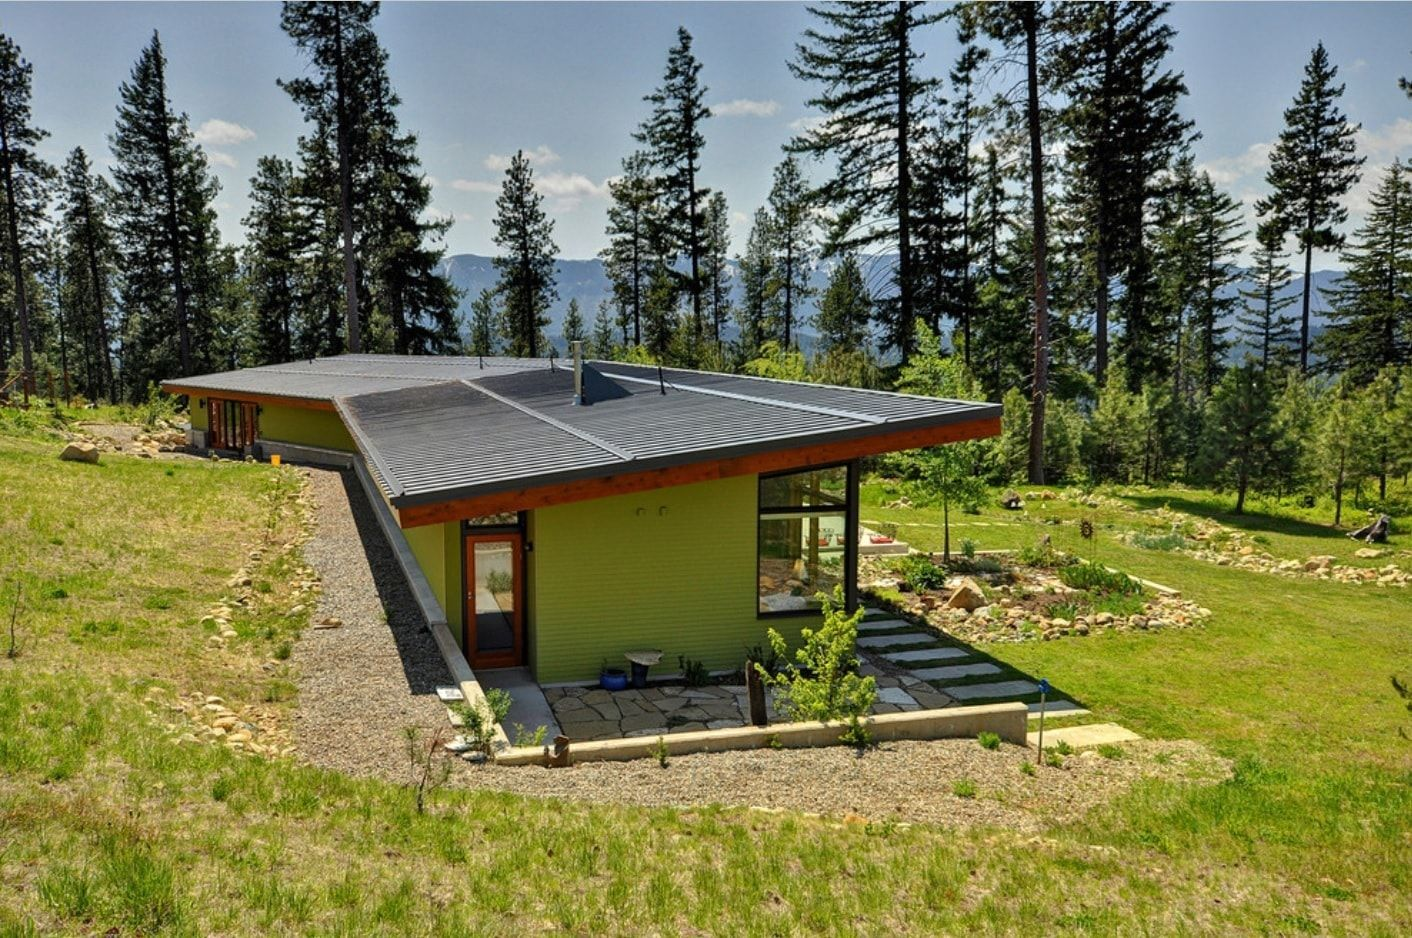 House Built Into Hill Or Underground Houses Small Design Ideas Solar House Plans Passive Solar House Plans Solar House